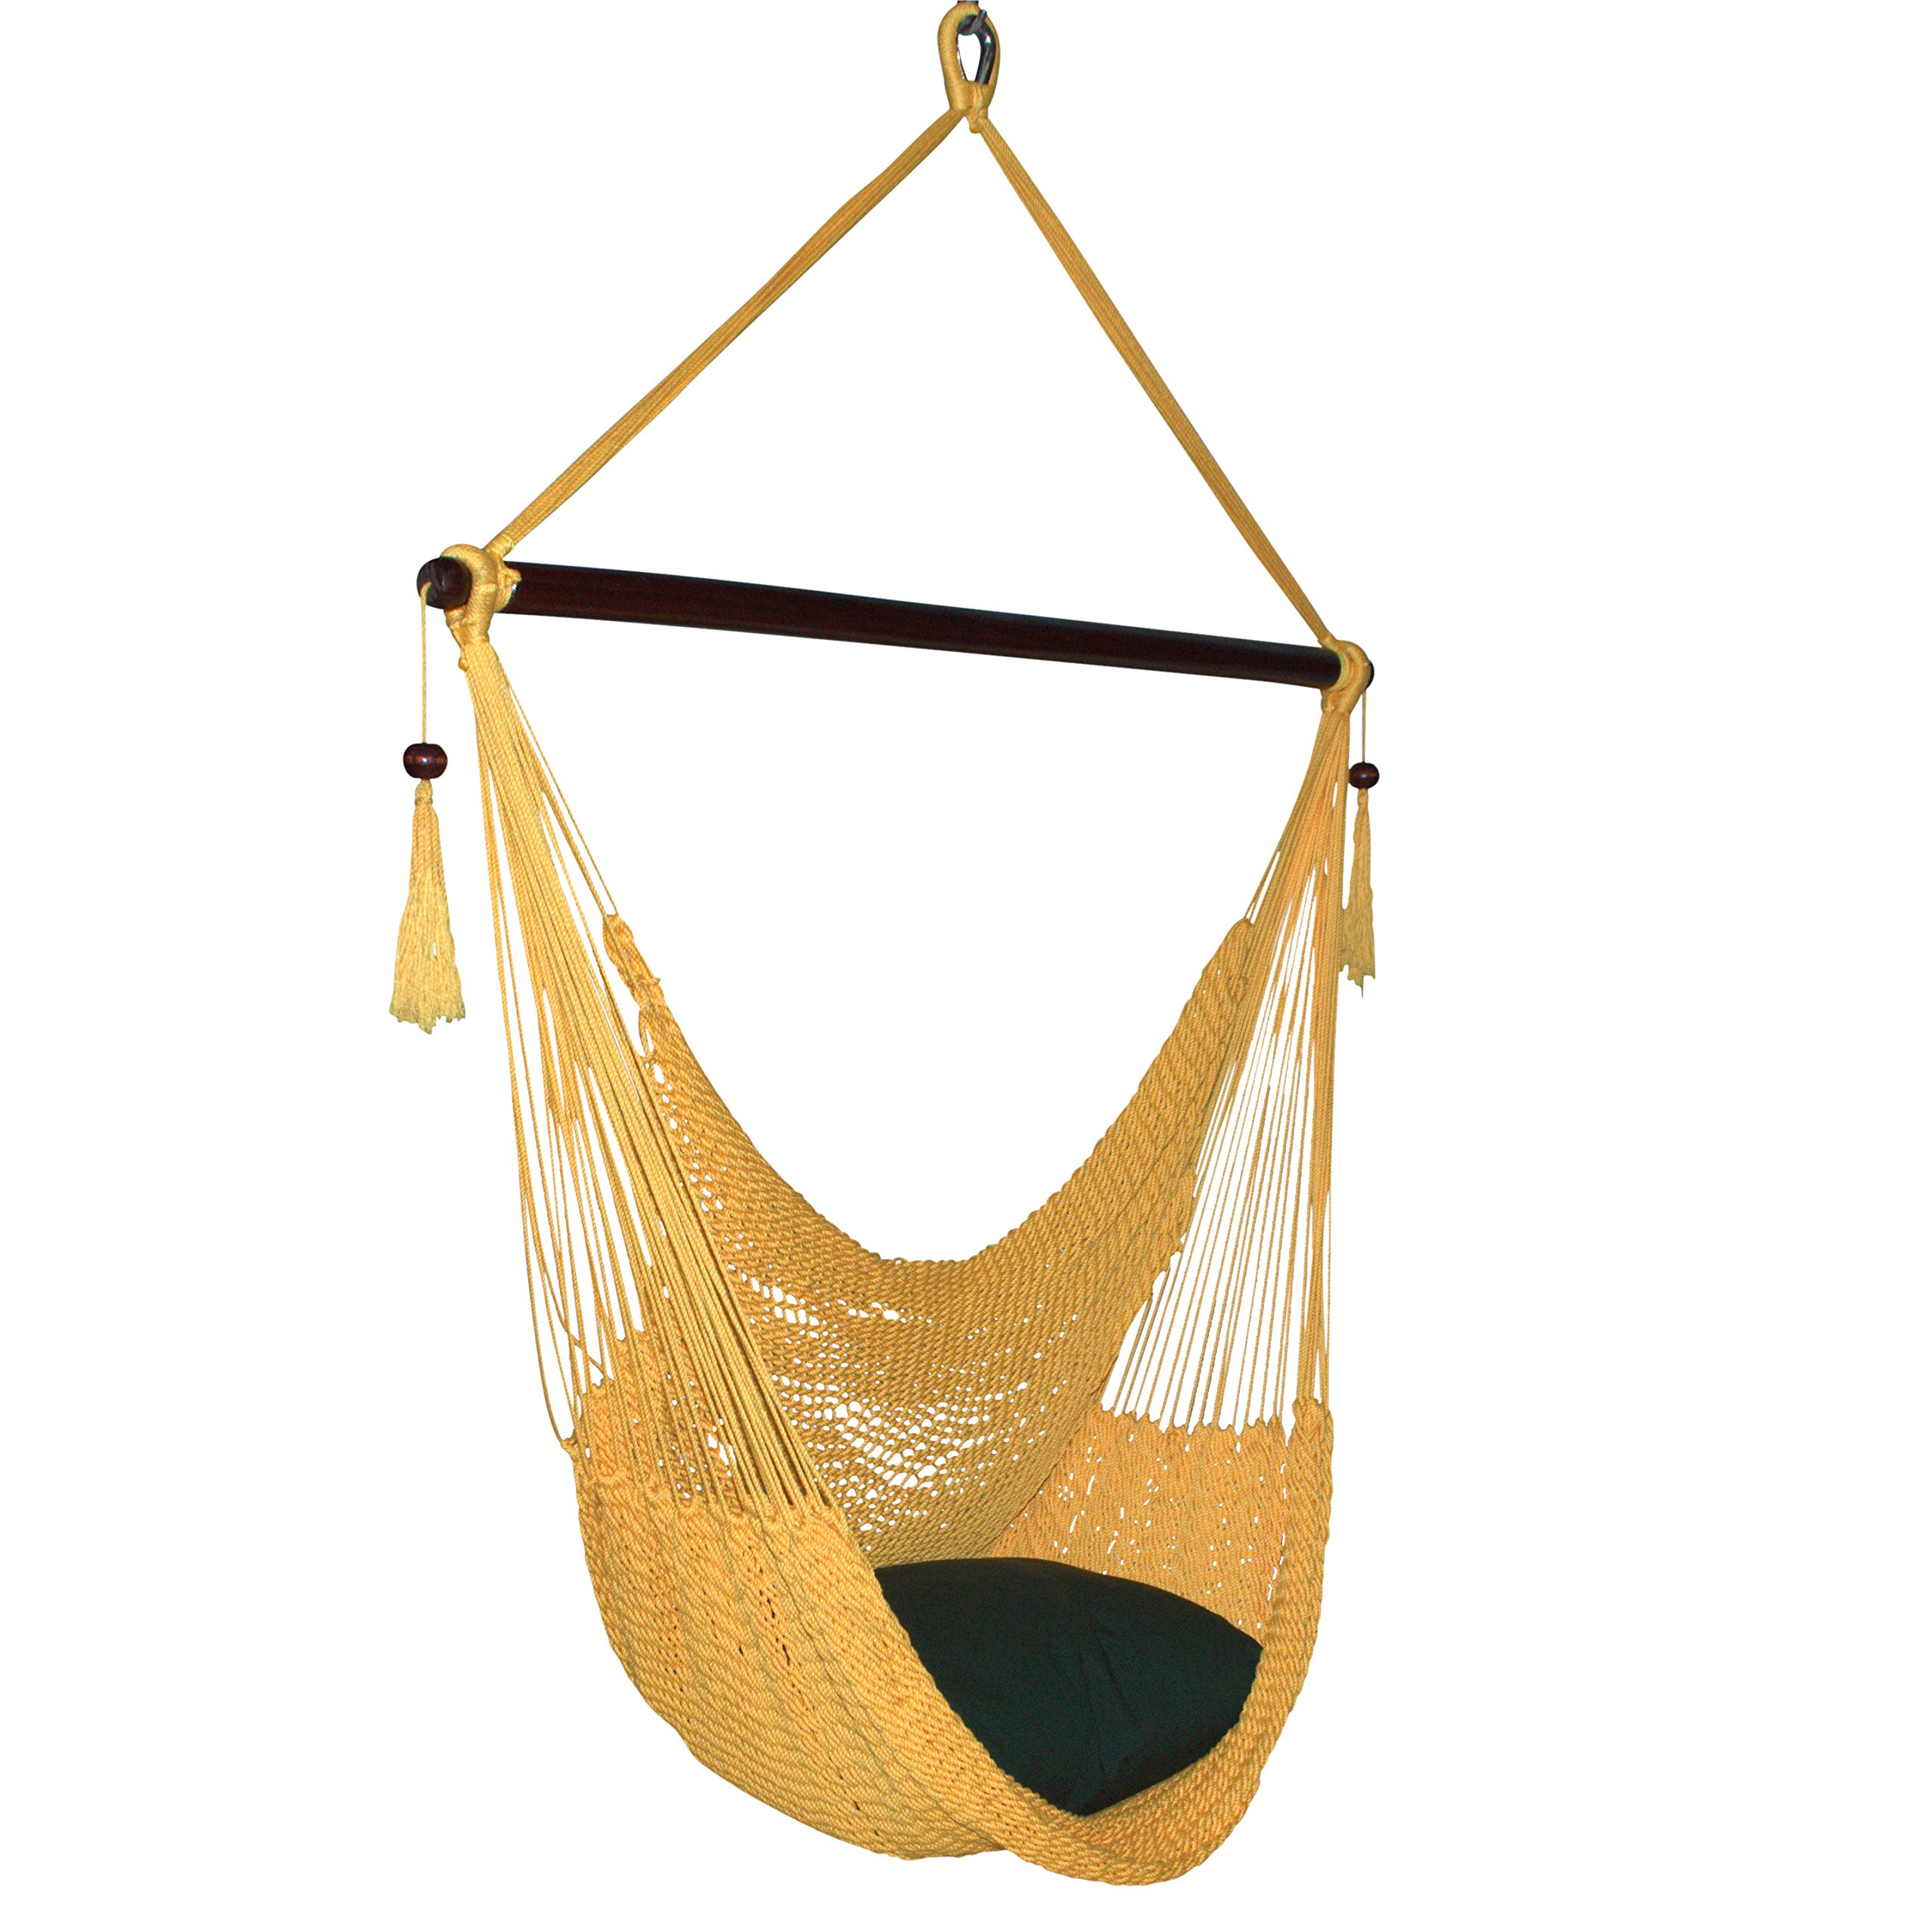 Caribbean Hammocks Large Chair with Footrest - 48 Inch - Polyester - Hanging Chair - Yellow